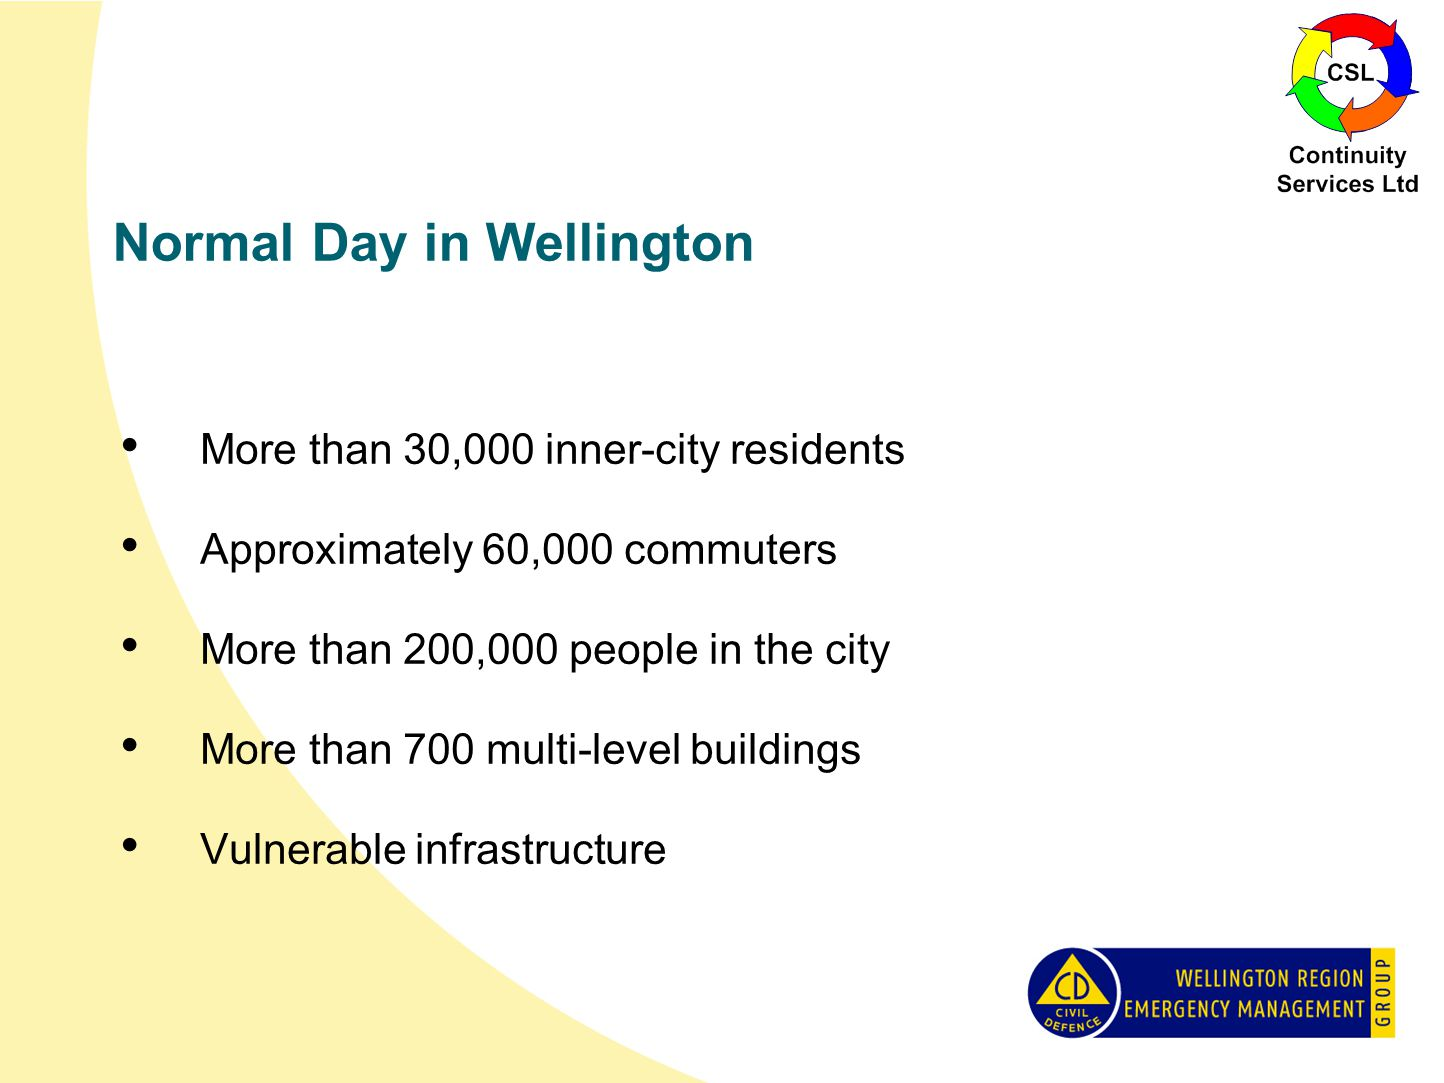 Normal Day in Wellington More than 30,000 inner-city residents Approximately 60,000 commuters More than 200,000 people in the city More than 700 multi-level buildings Vulnerable infrastructure